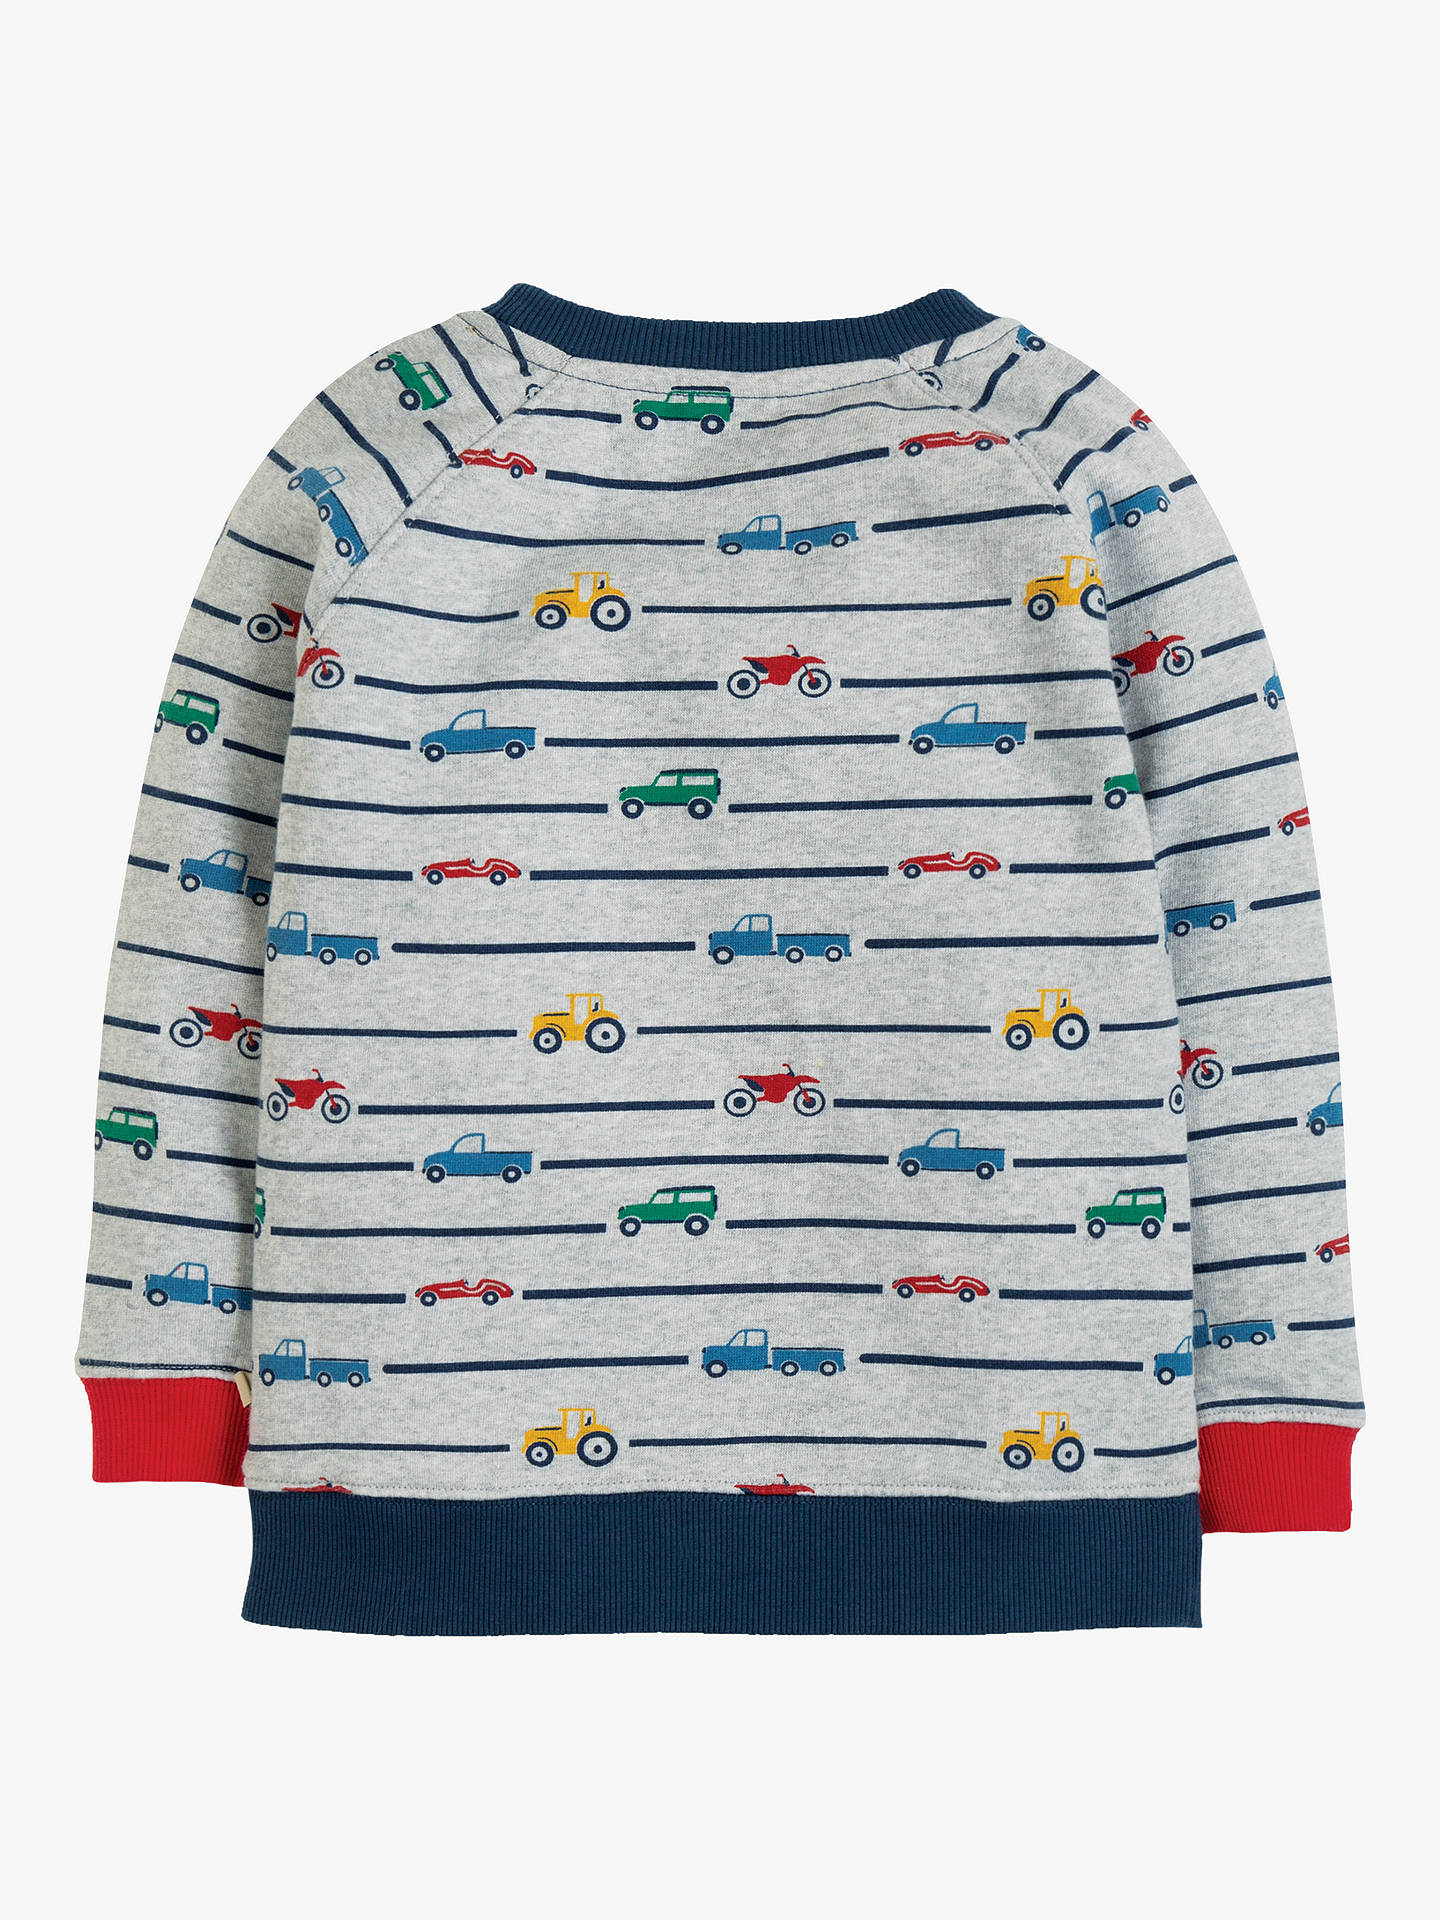 NOW £15 Frugi Rex Jumper, Racing Rally